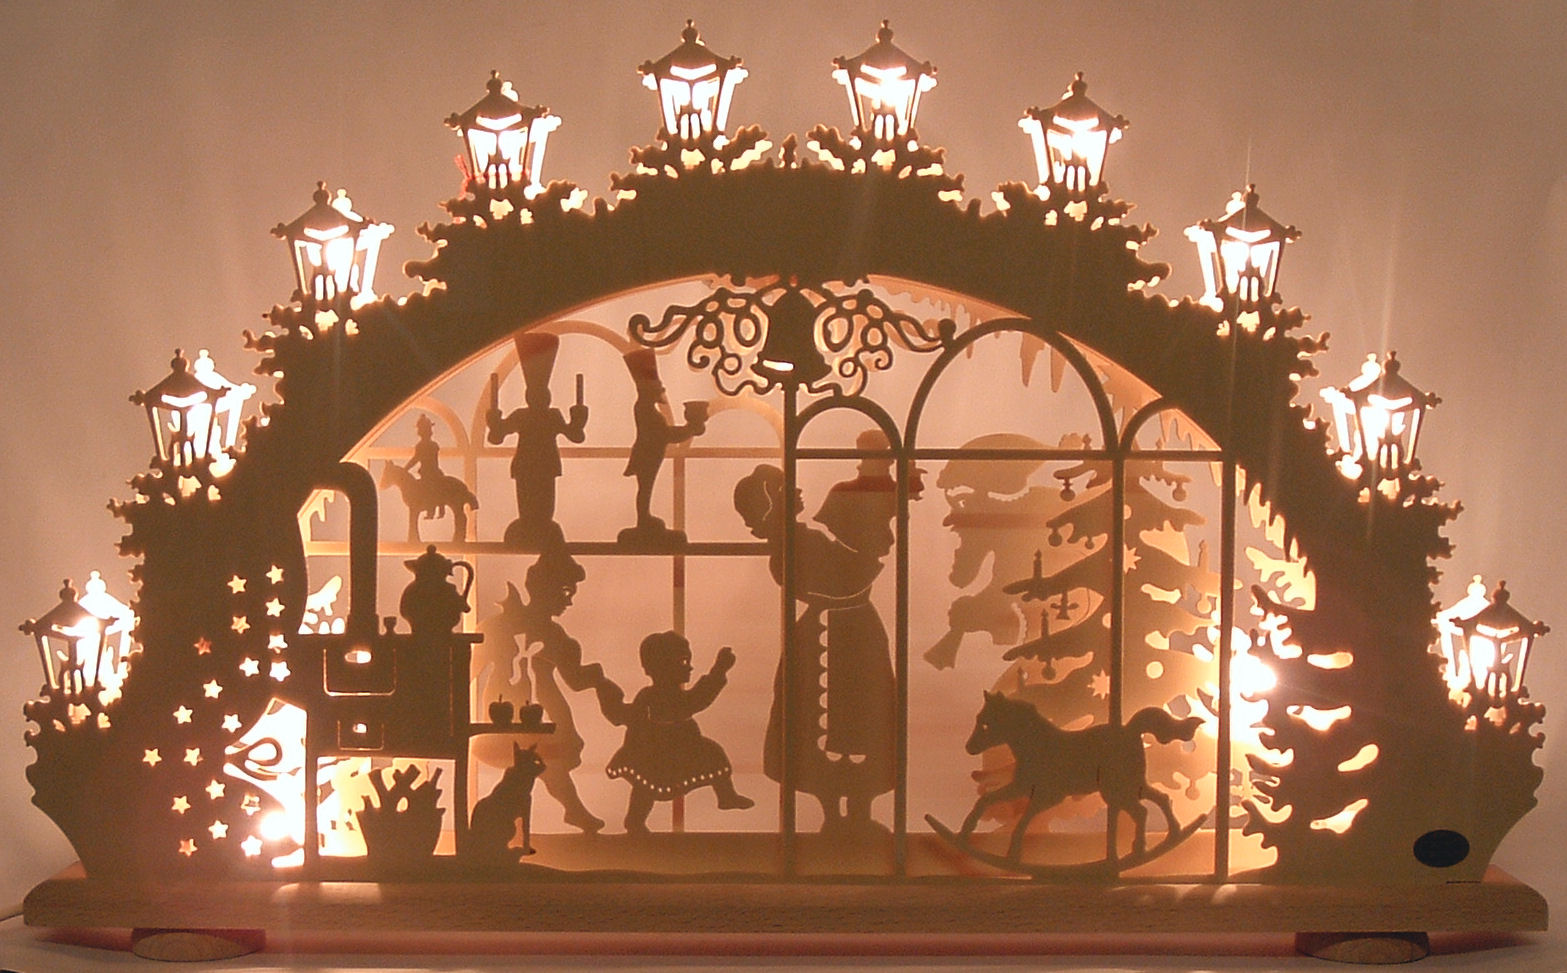 related to the schwibbogen and hailing from the same region of germany is the tradition of the christmas pyramid whose origins date back to the middle ages